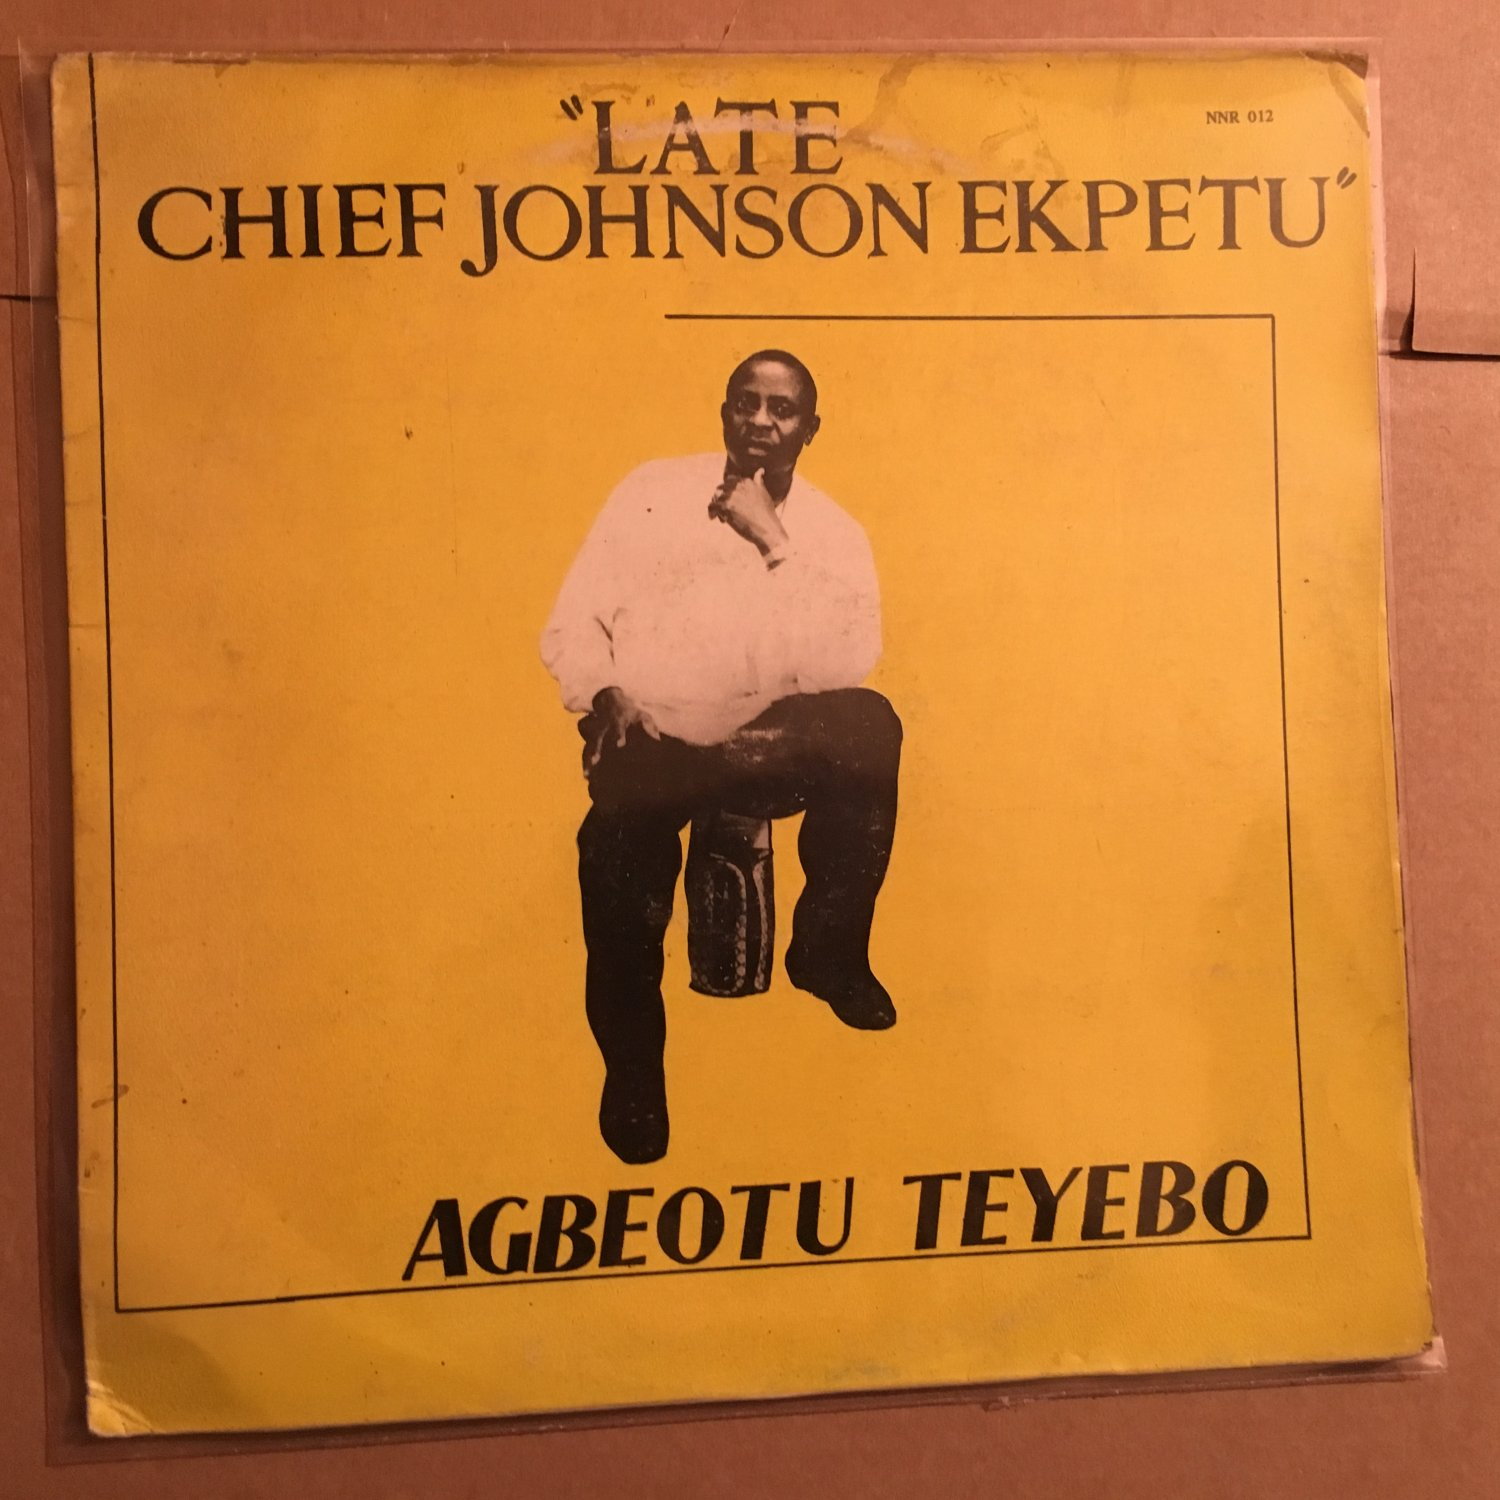 AGBEOTU TEYEBO LP late Chief Johnson Ekpetu NIGERIA HIGHLIFE mp3 LISTEN